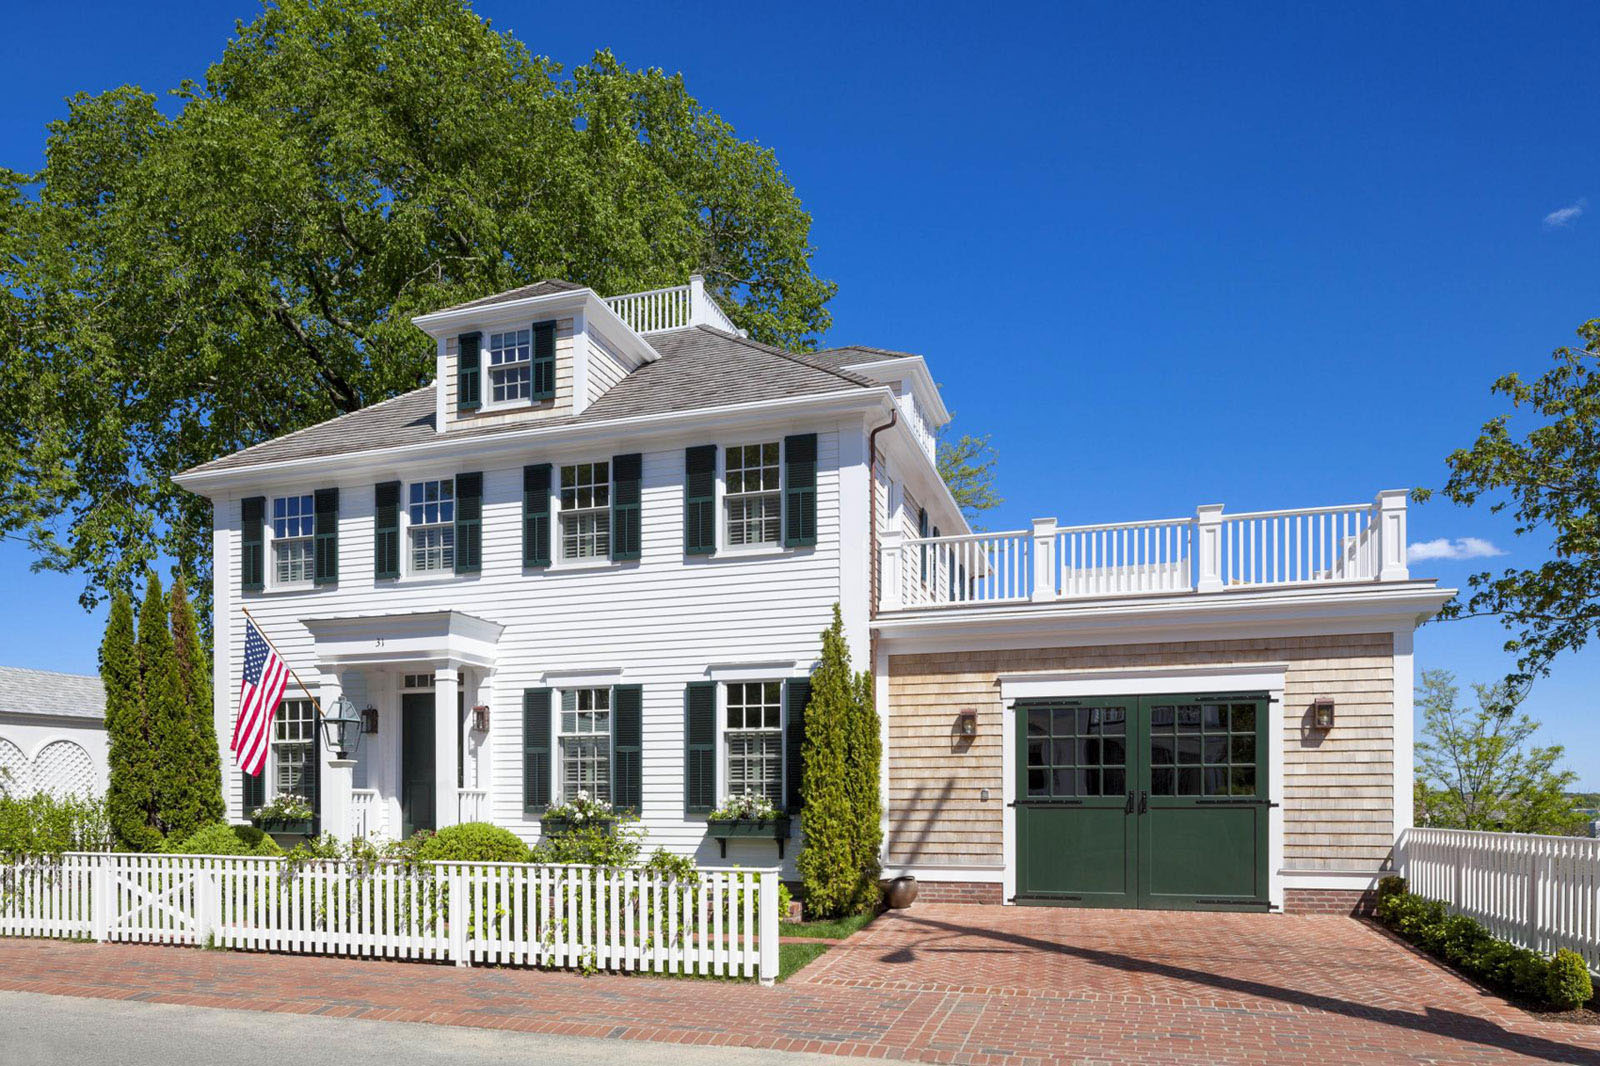 Family Home With New England Colonial Architecture On Martha 39 S Vineyard Idesignarch Interior